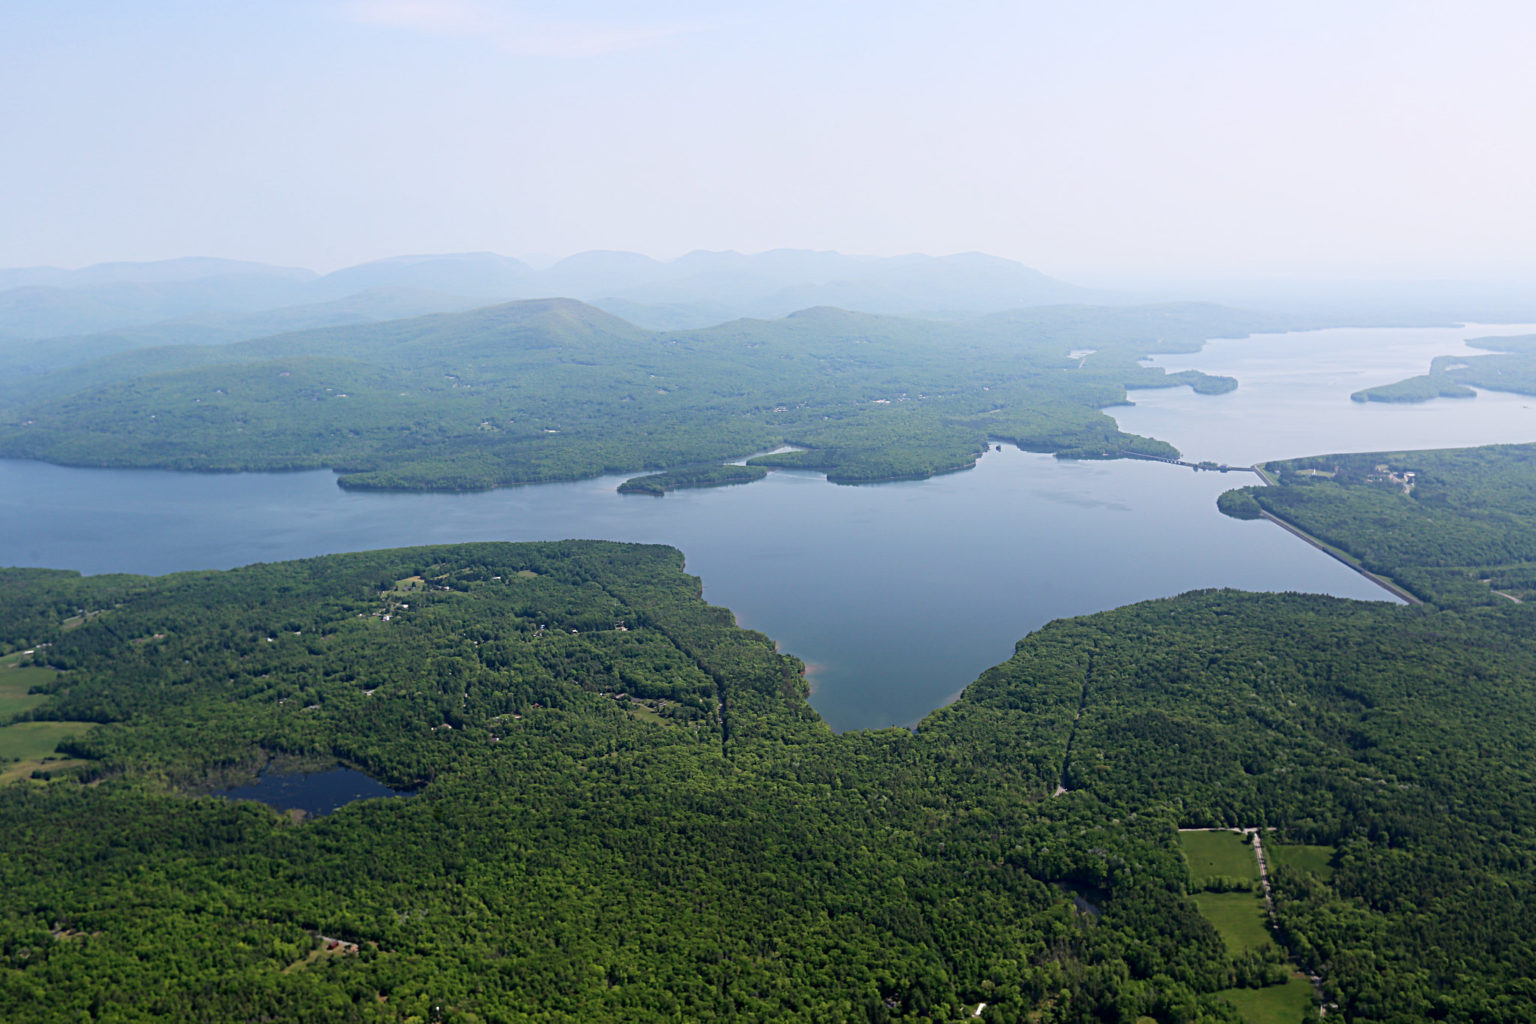 A birds-eye view of the Ashokan Reservoir in New York State